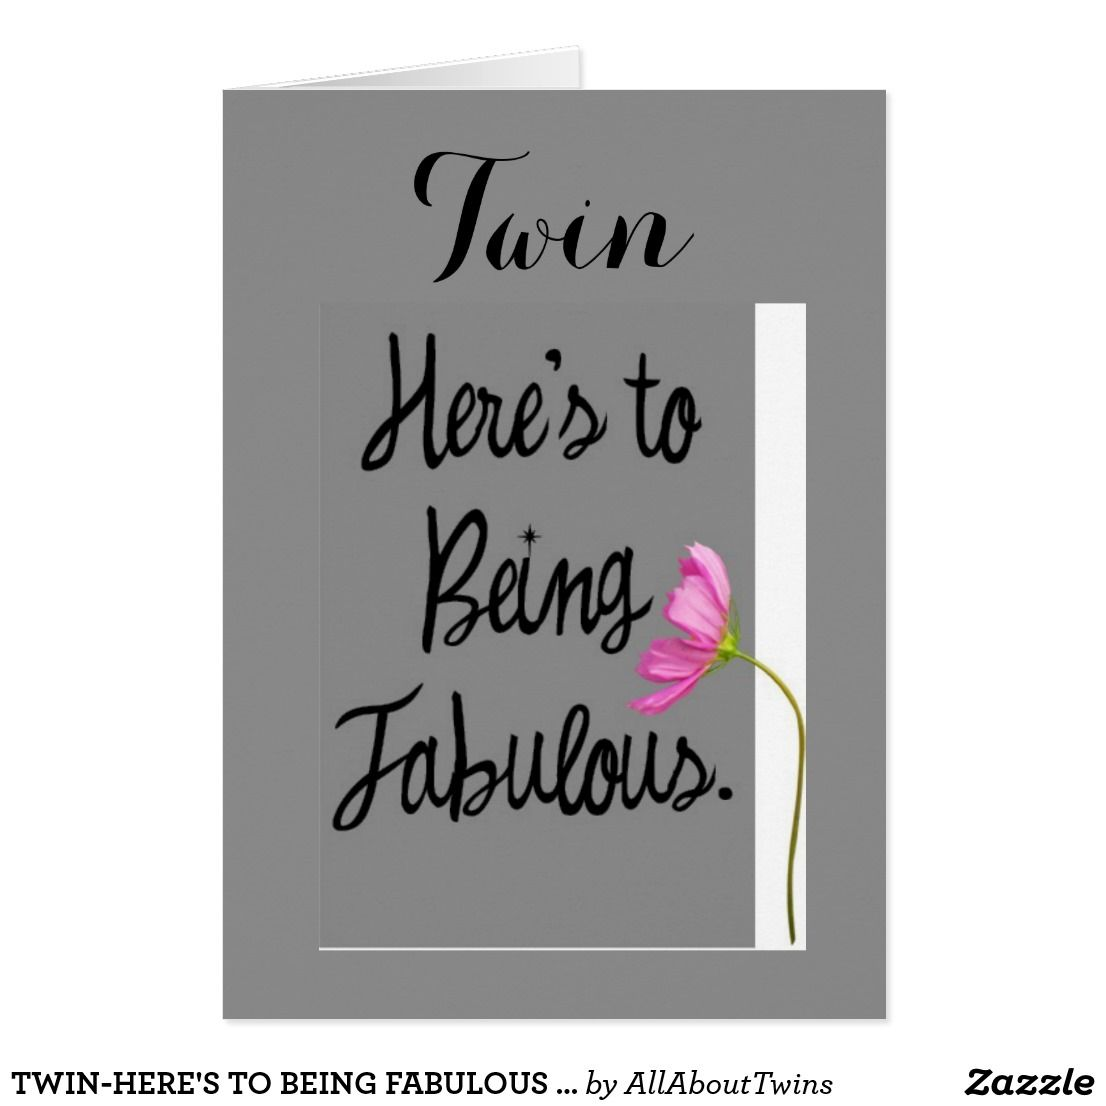 Twin heres to being fabulous birthday wishes card greeting twin heres to being fabulous birthday wishes card kristyandbryce Gallery